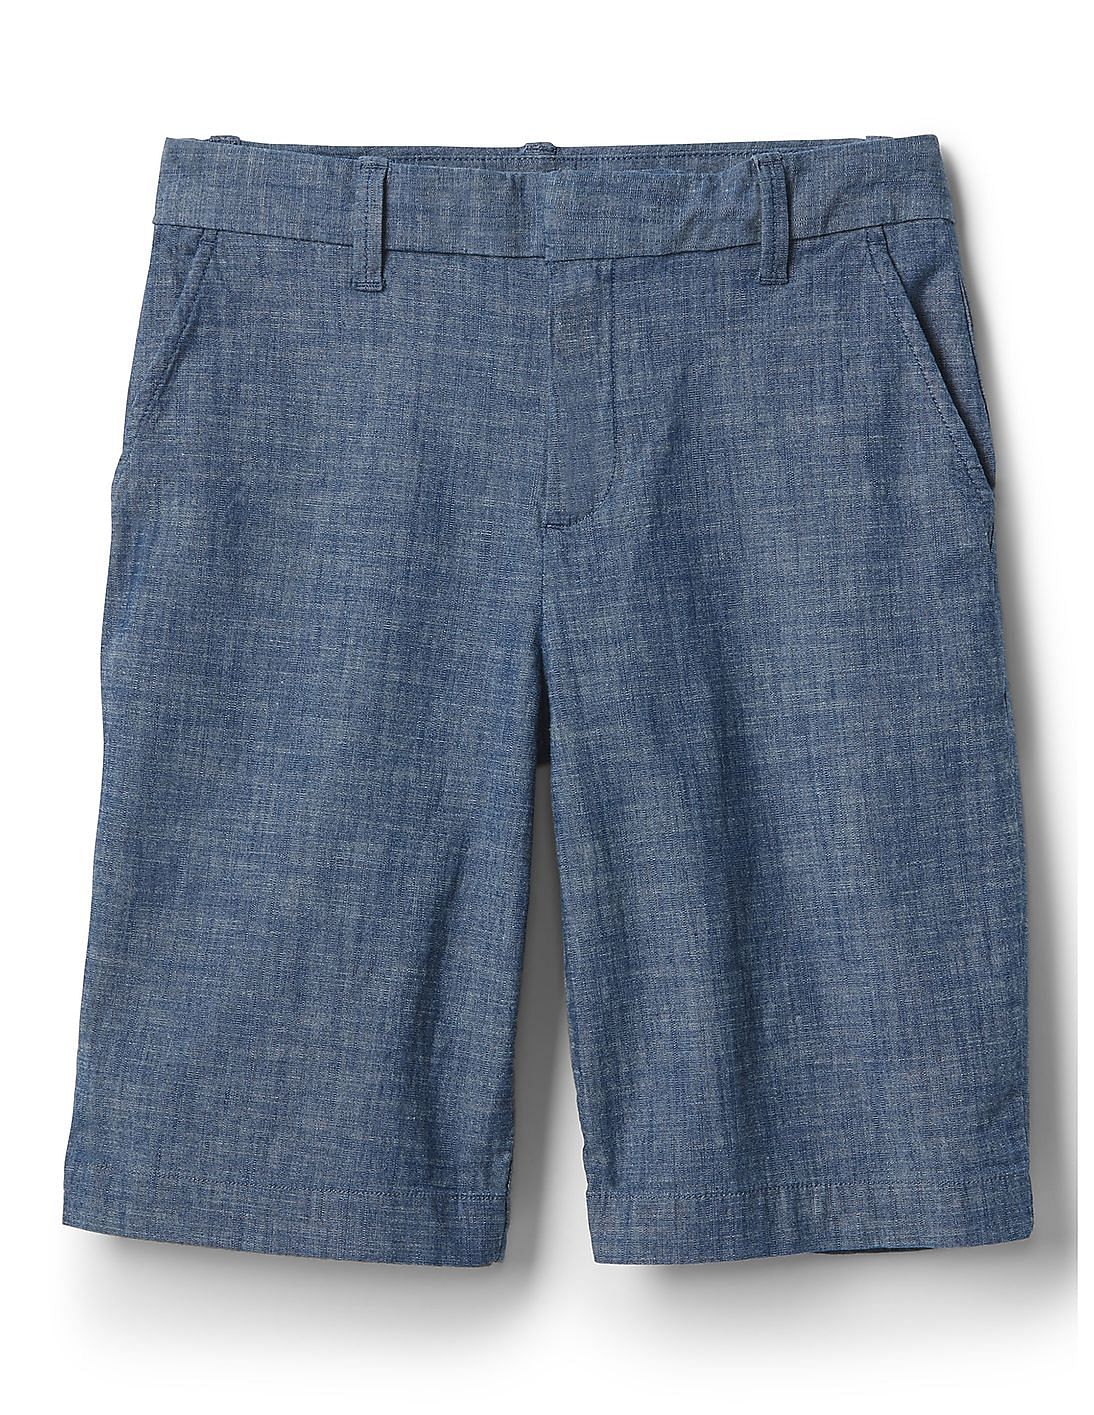 Bermuda In Women Chambray Shorts Buy Stretch Online At USMVqzp